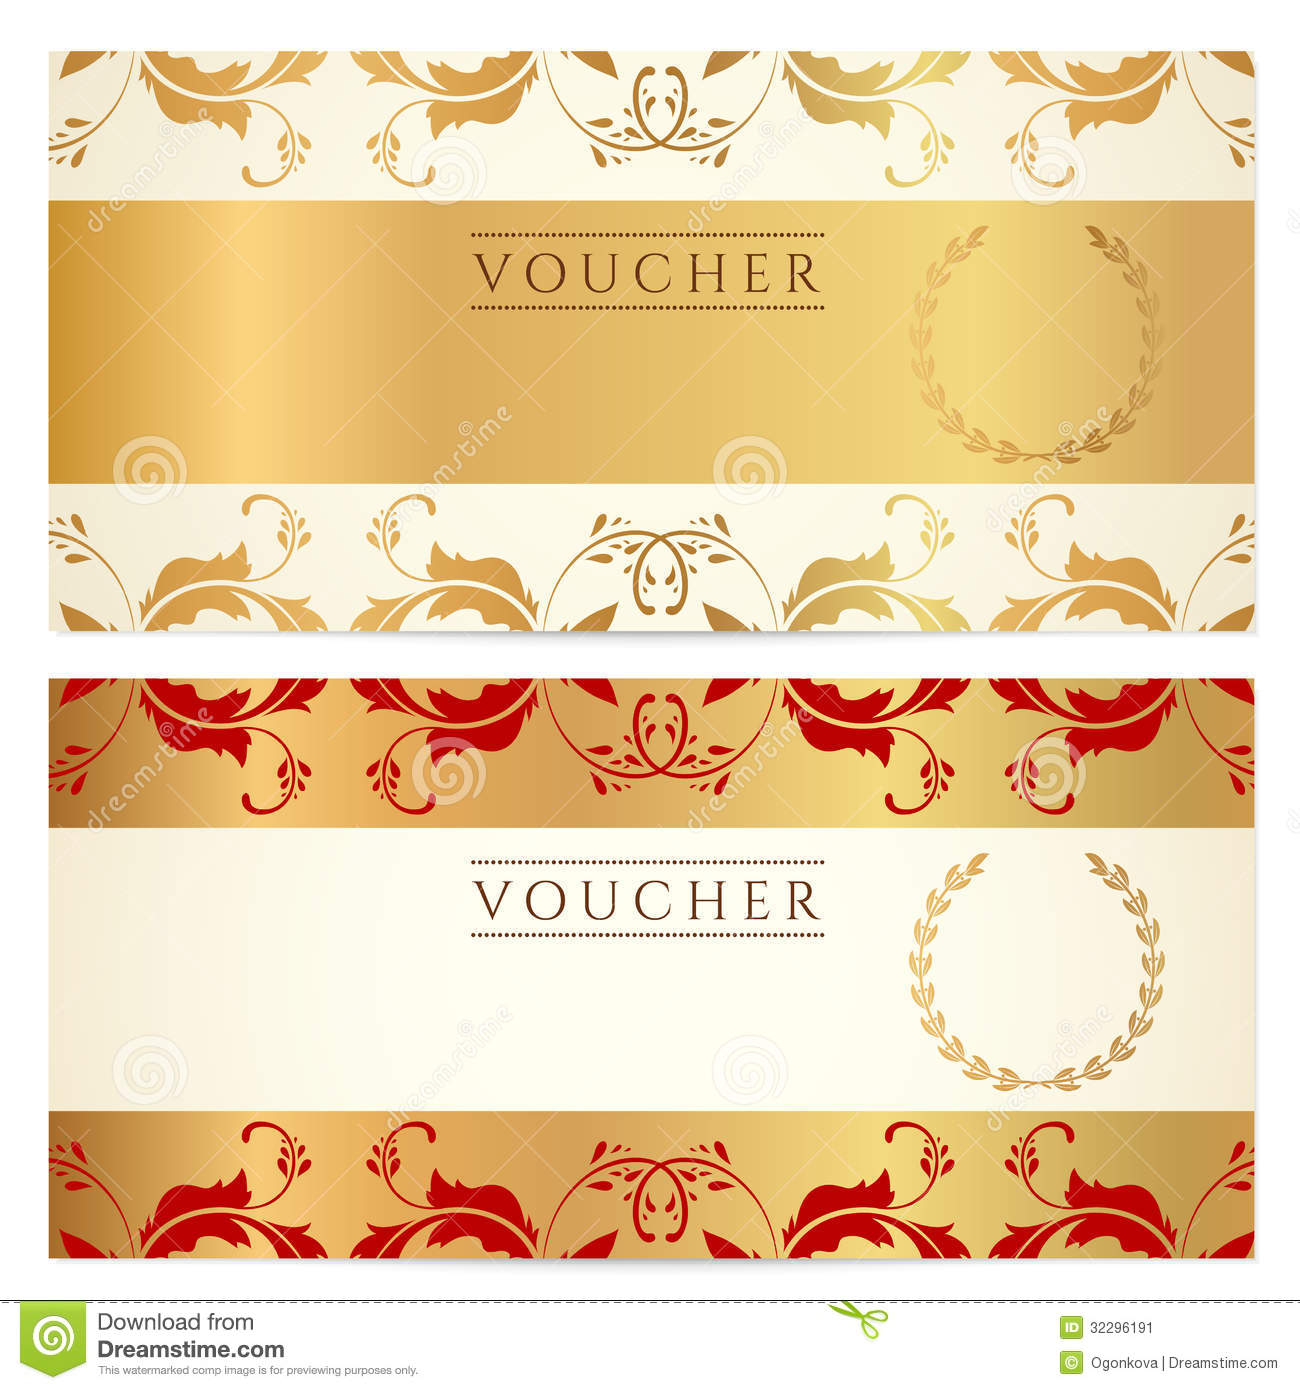 voucher gift certificate template gold pattern royalty gift certificate voucher coupon template stock image